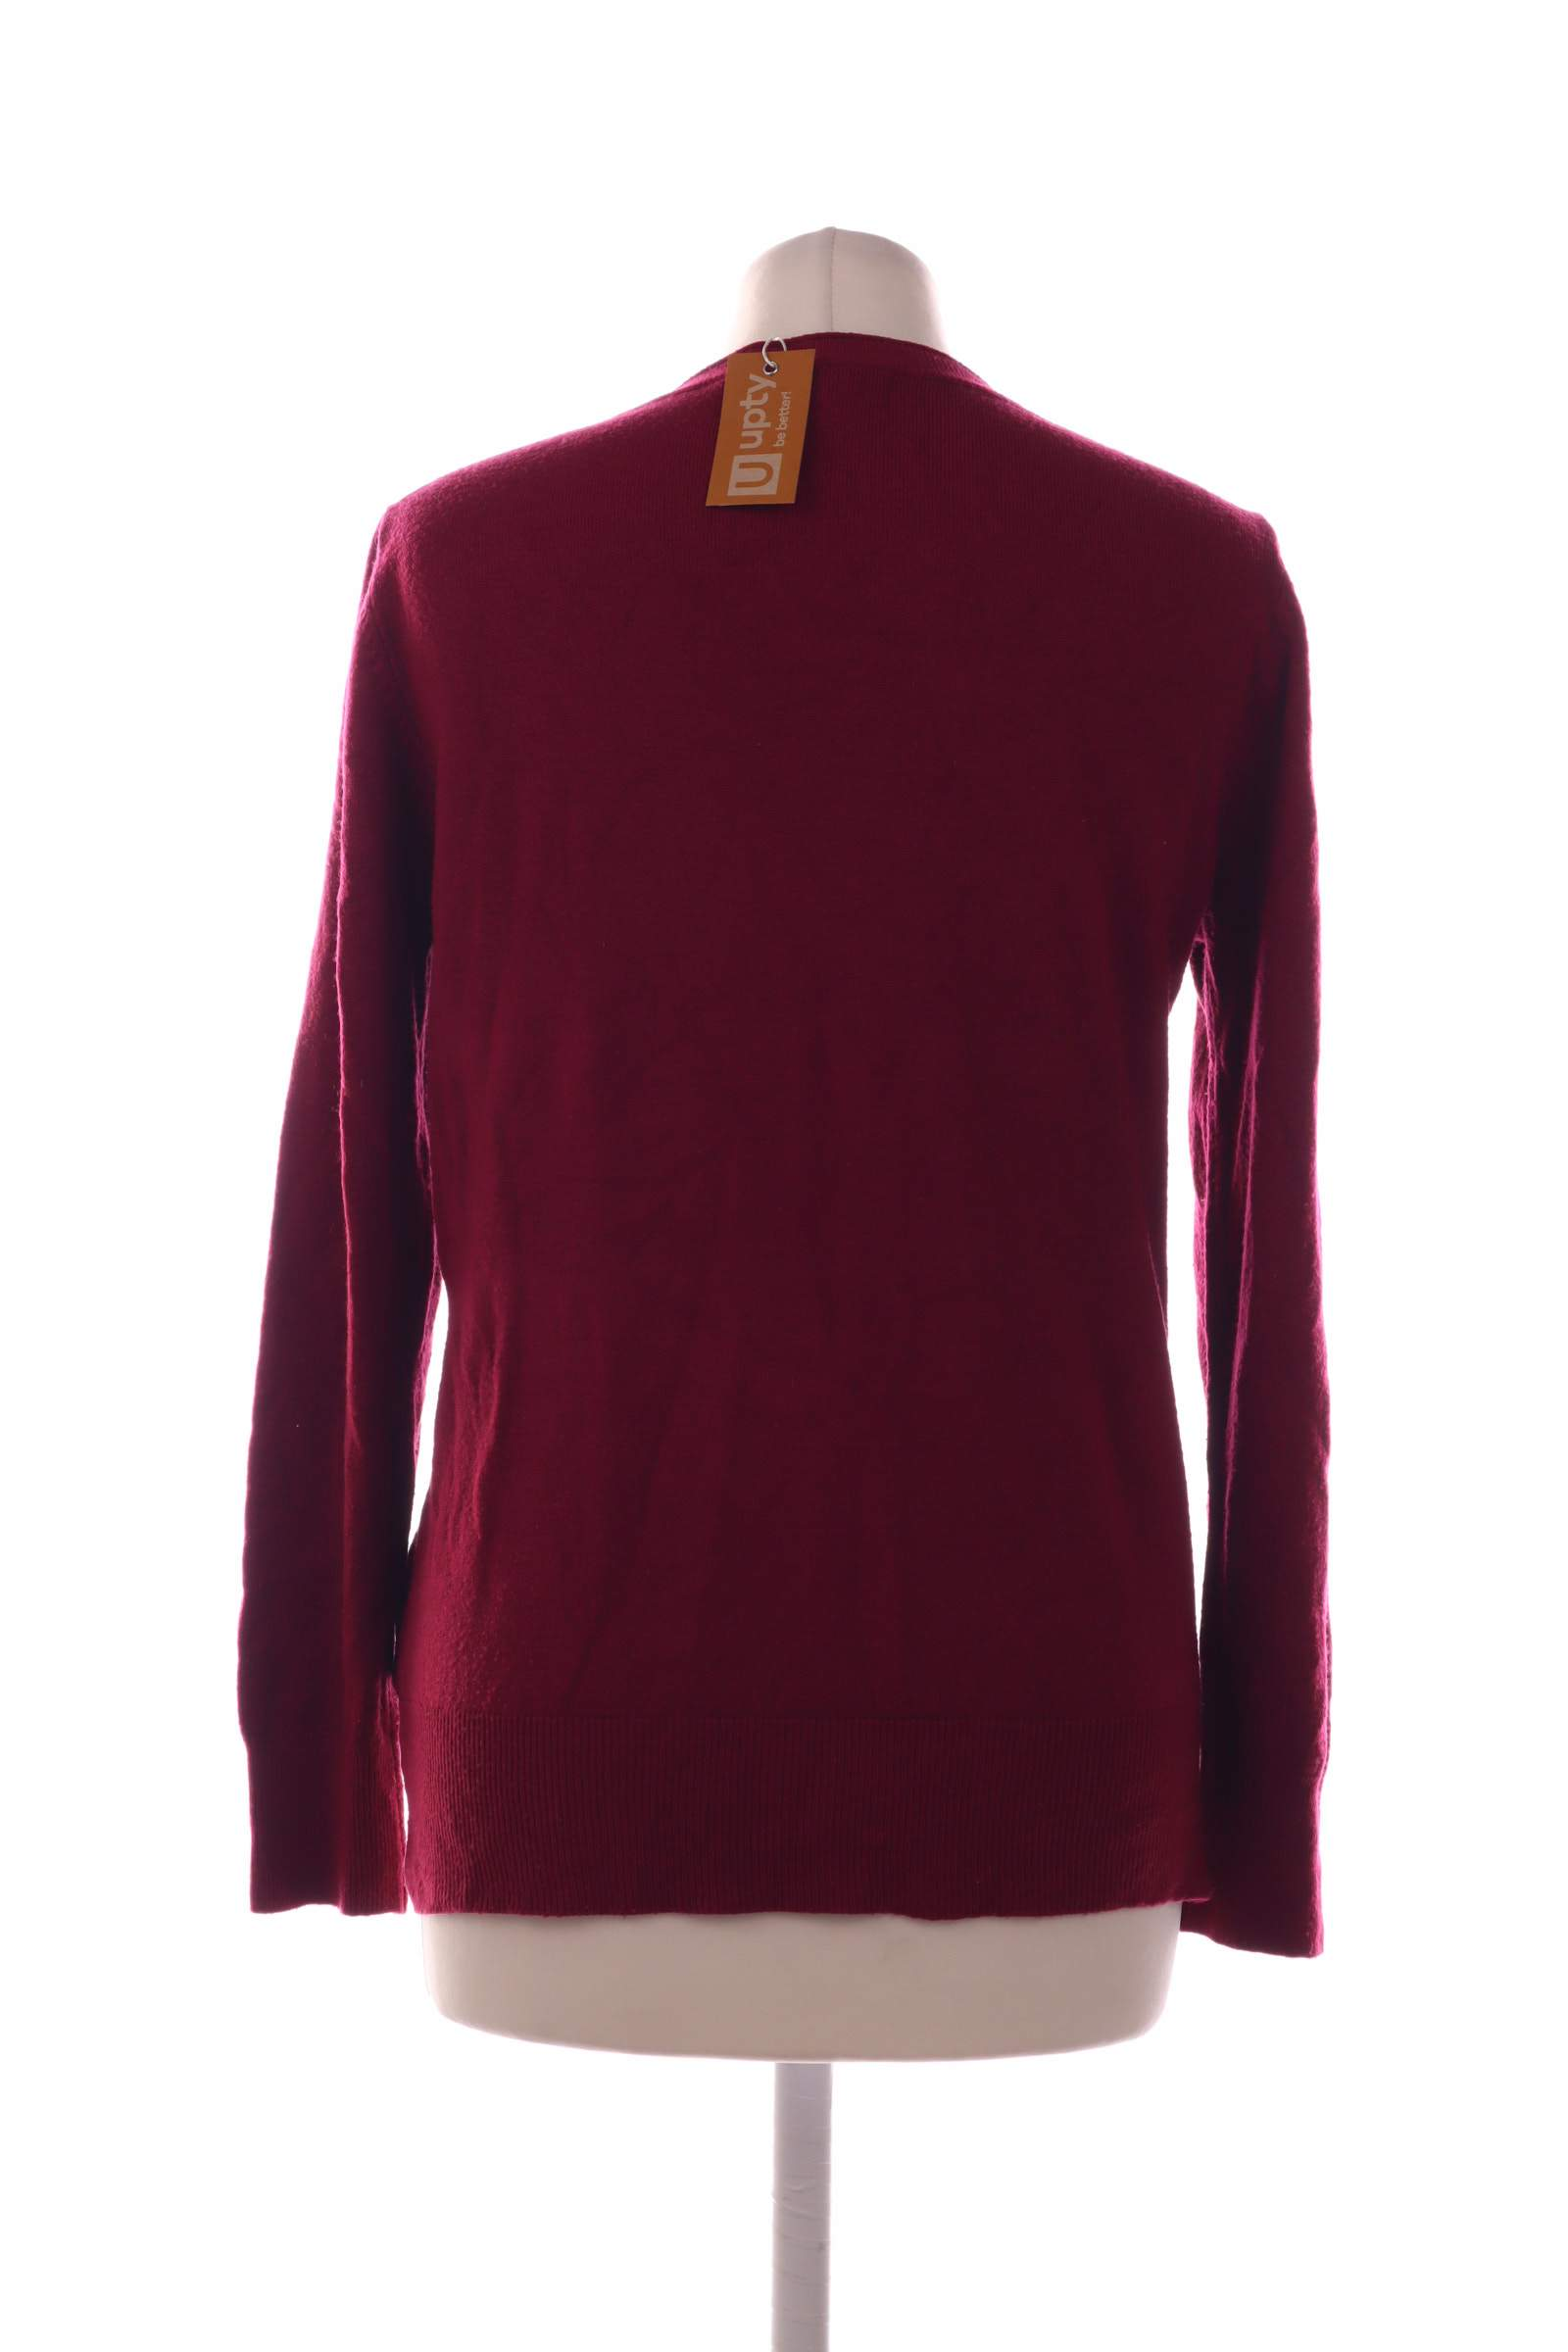 Atmosphere Purple Sweater - upty.store